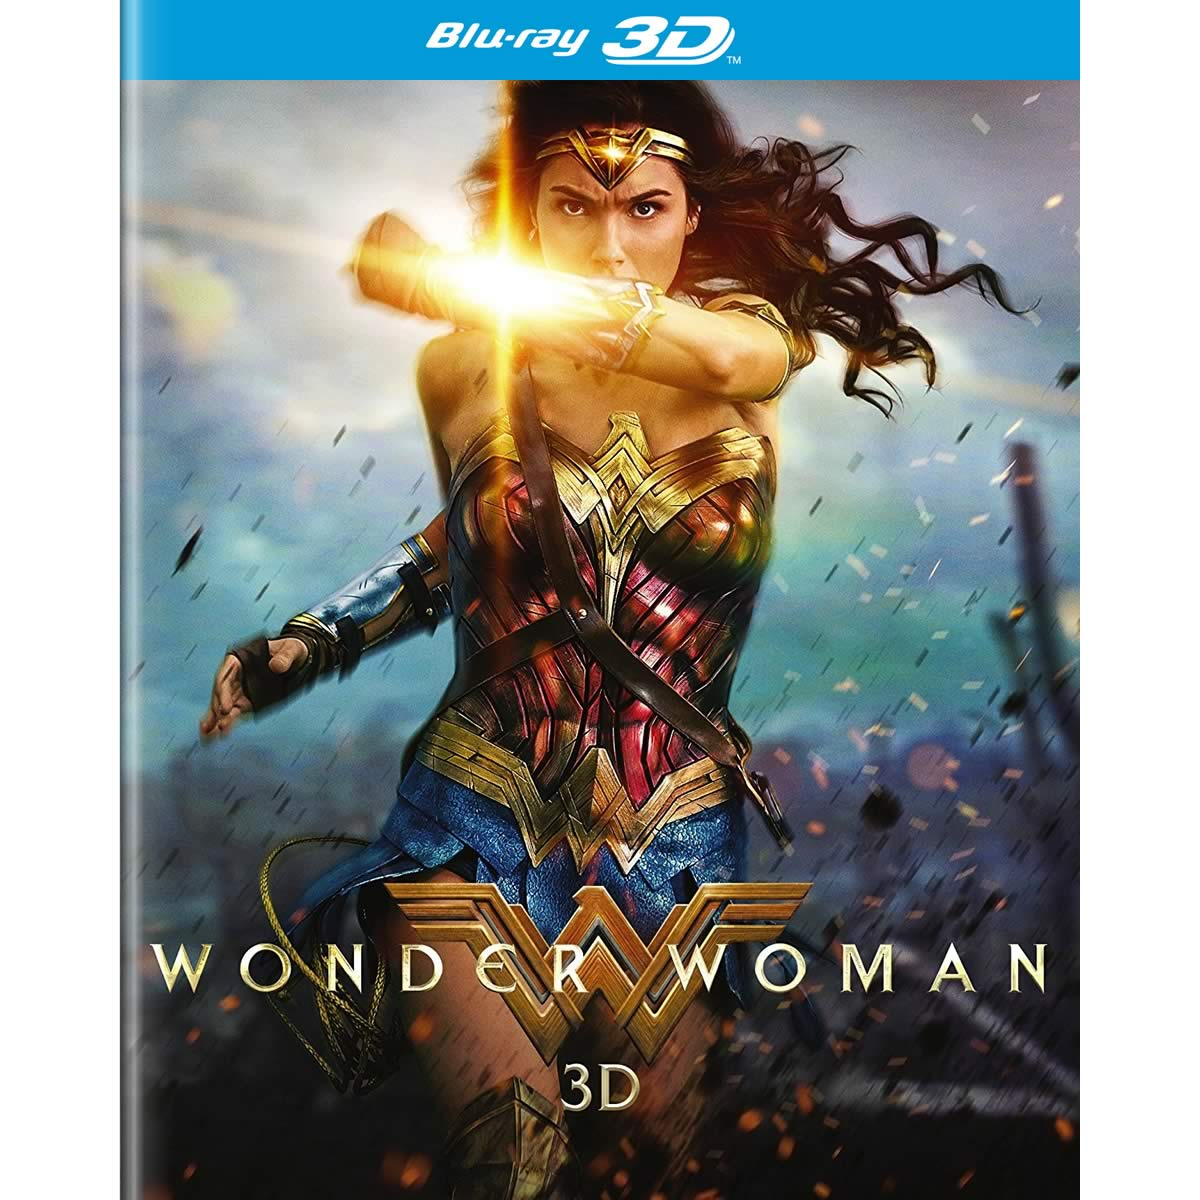 WONDER WOMAN 3D (BLU-RAY 3D/2D)